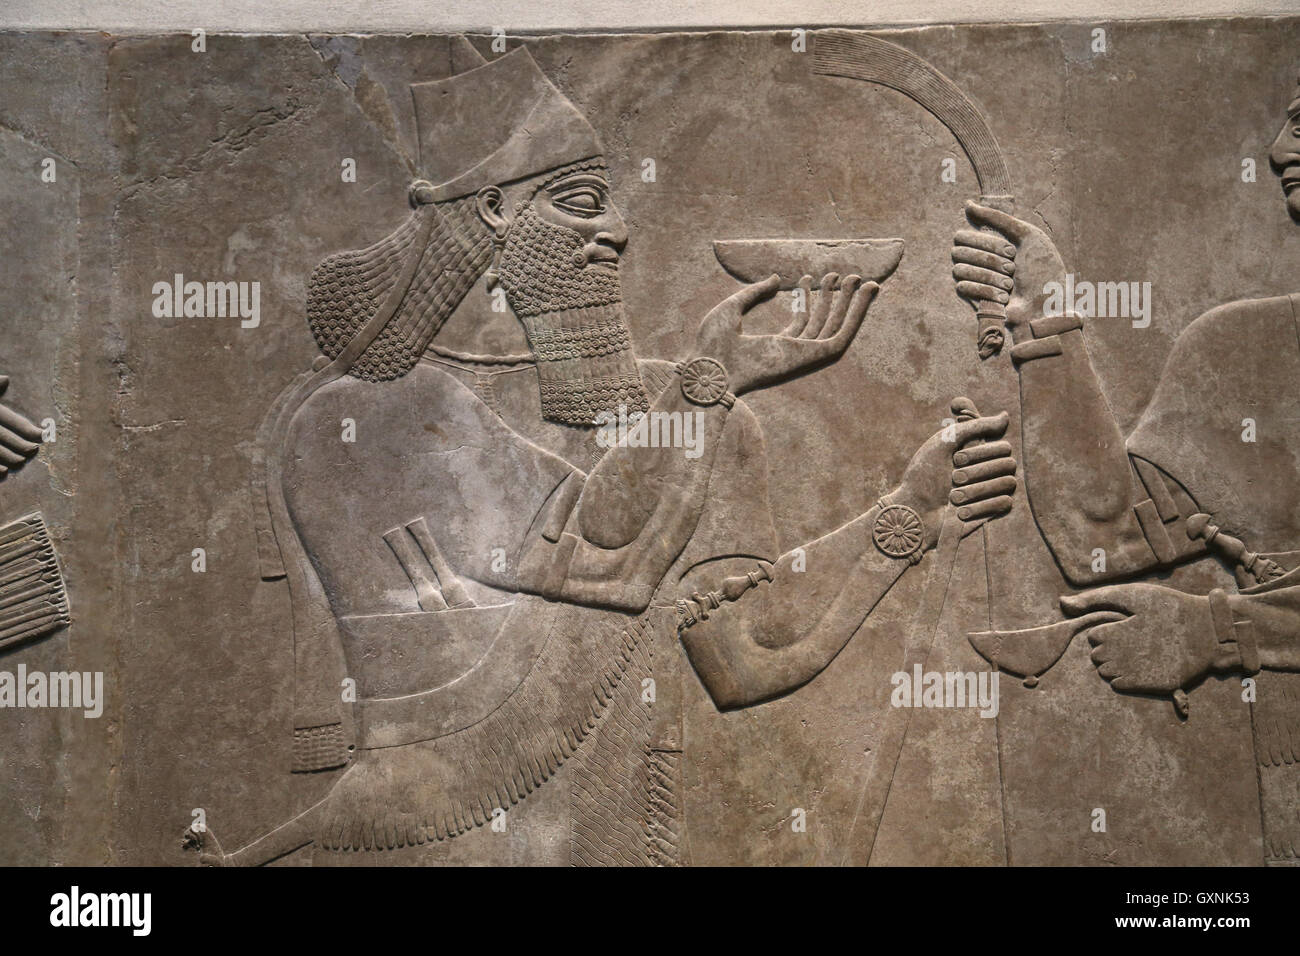 Relief King Ashurnasirpal II with ceremonial bowl. 883-859 B.C. Neo-Assyrian. Reign of Ashurnasirpal. Nimrud.  Mesopotamia. Stock Photo